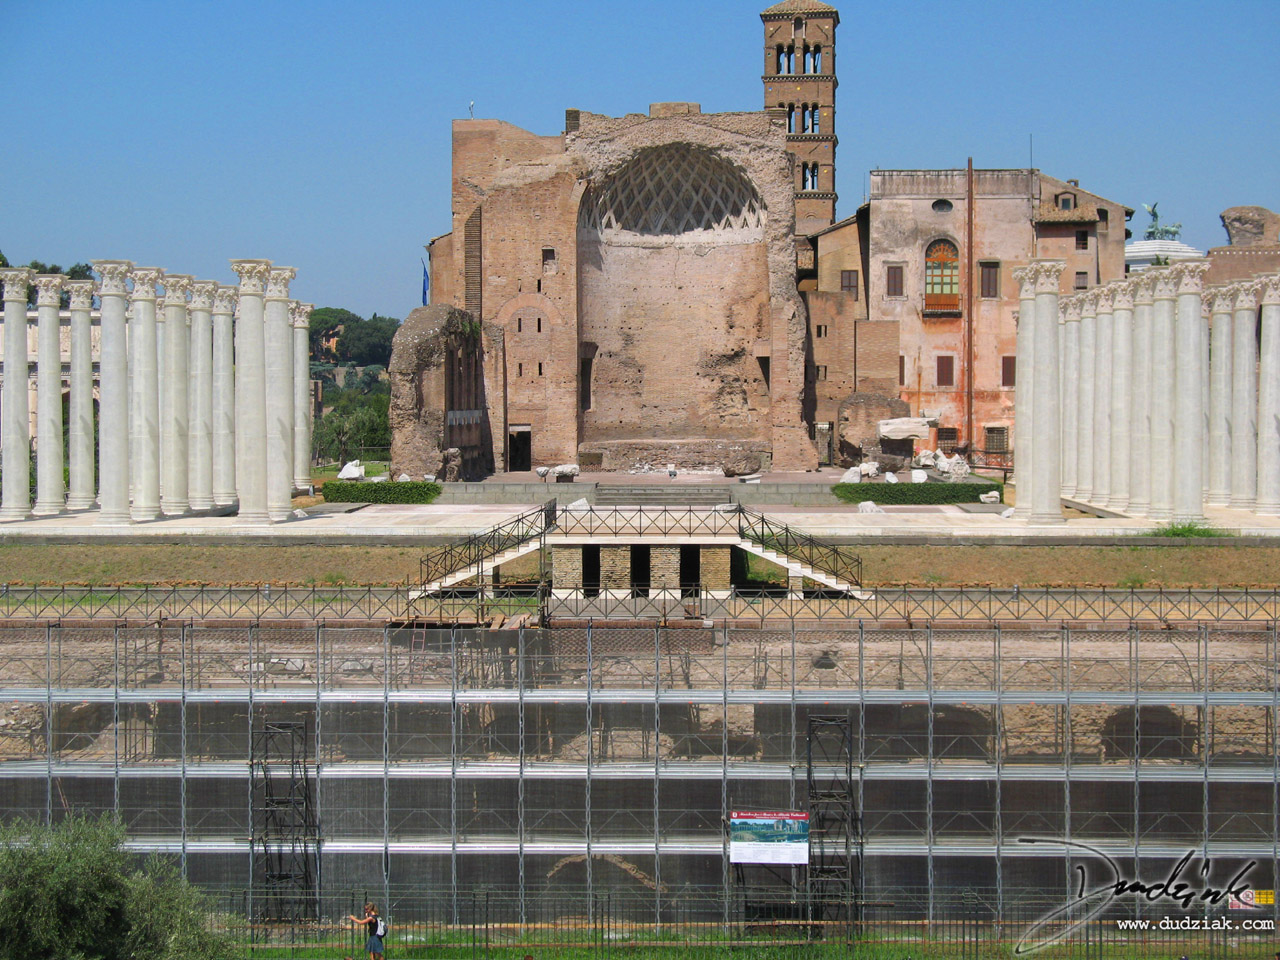 Temple of Venus and Roma as seen from the Roman Colosseum in Rome, Italy.